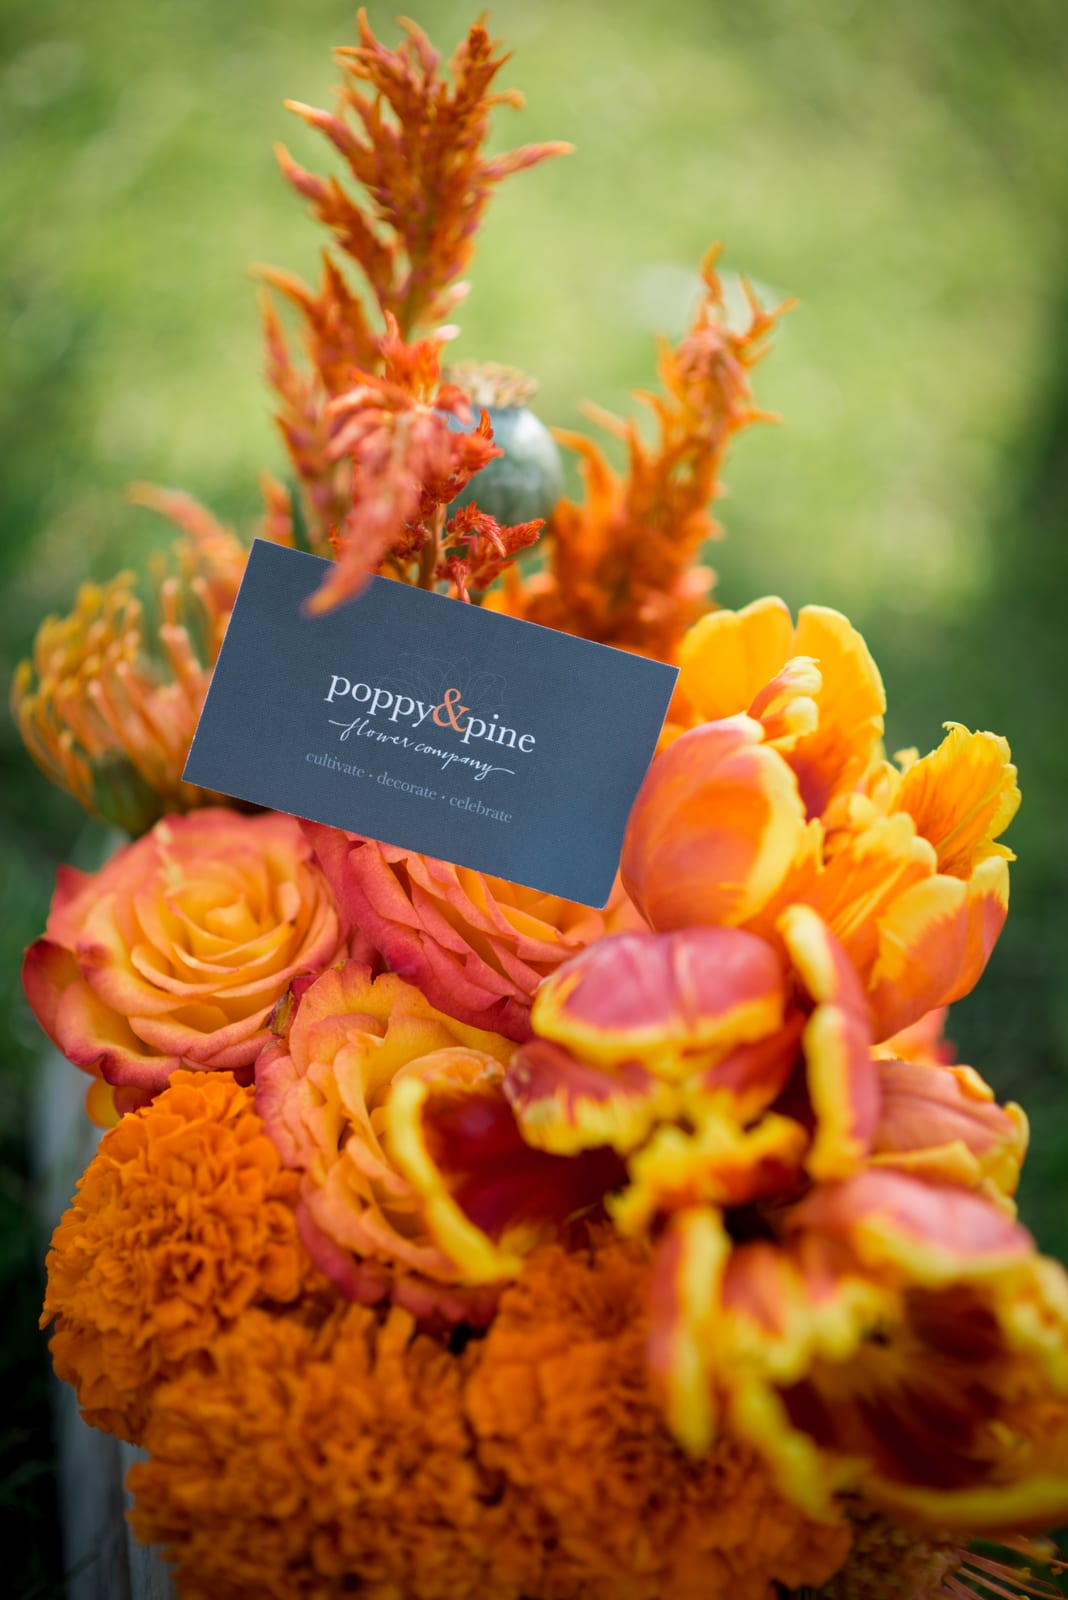 Poppy & Pine   Product Photography   Denver, CO   From The Hip Photo